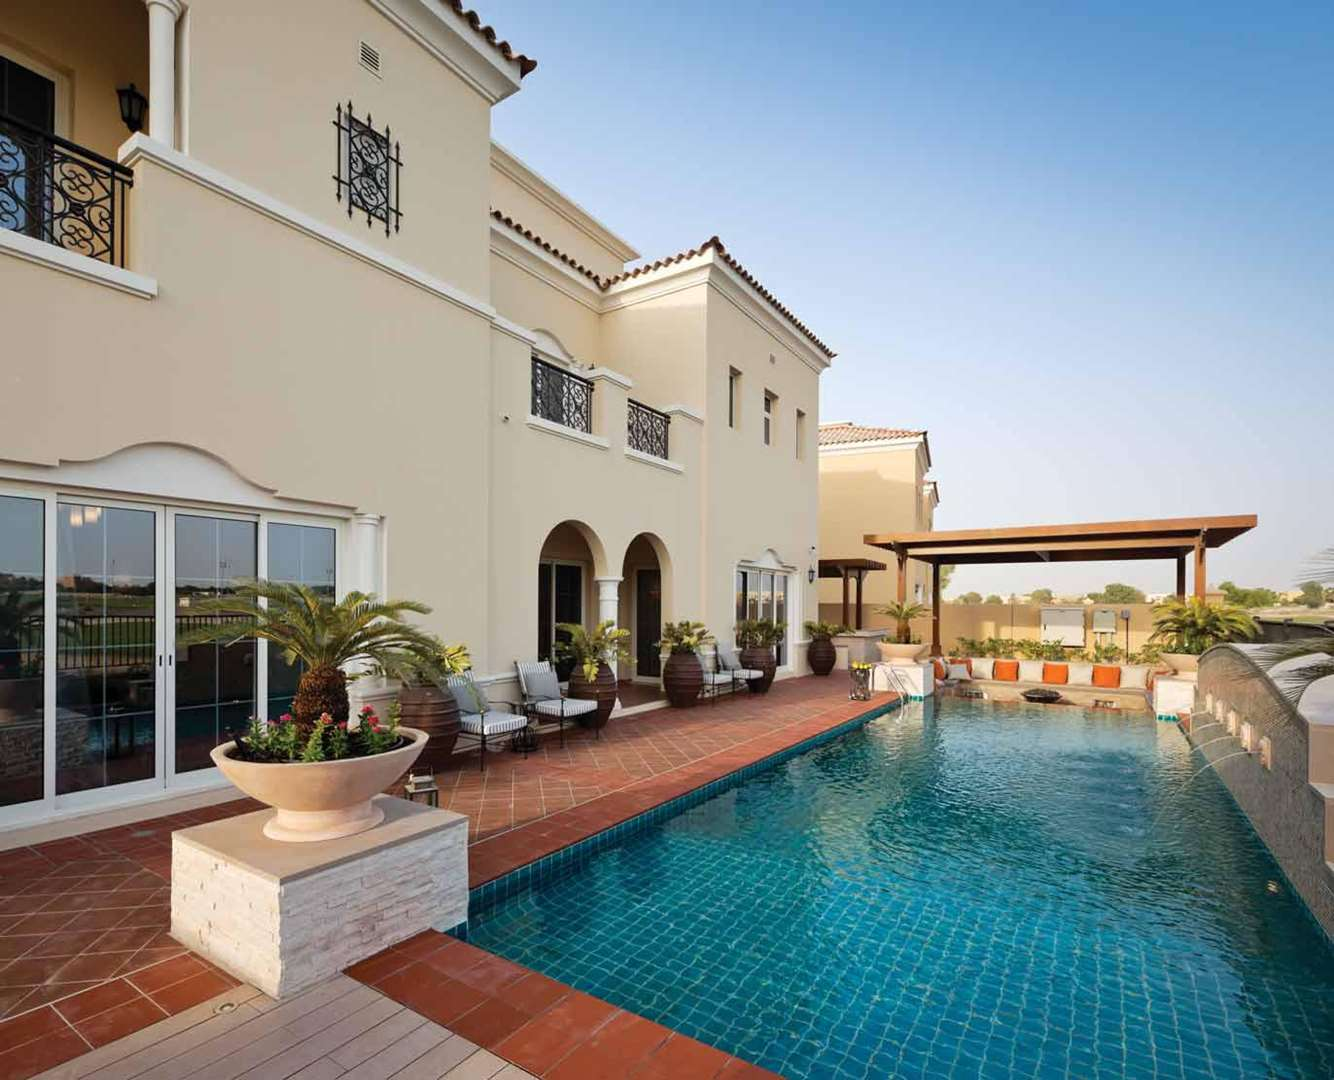 La Avenida 2 Villas at Arabian Ranches